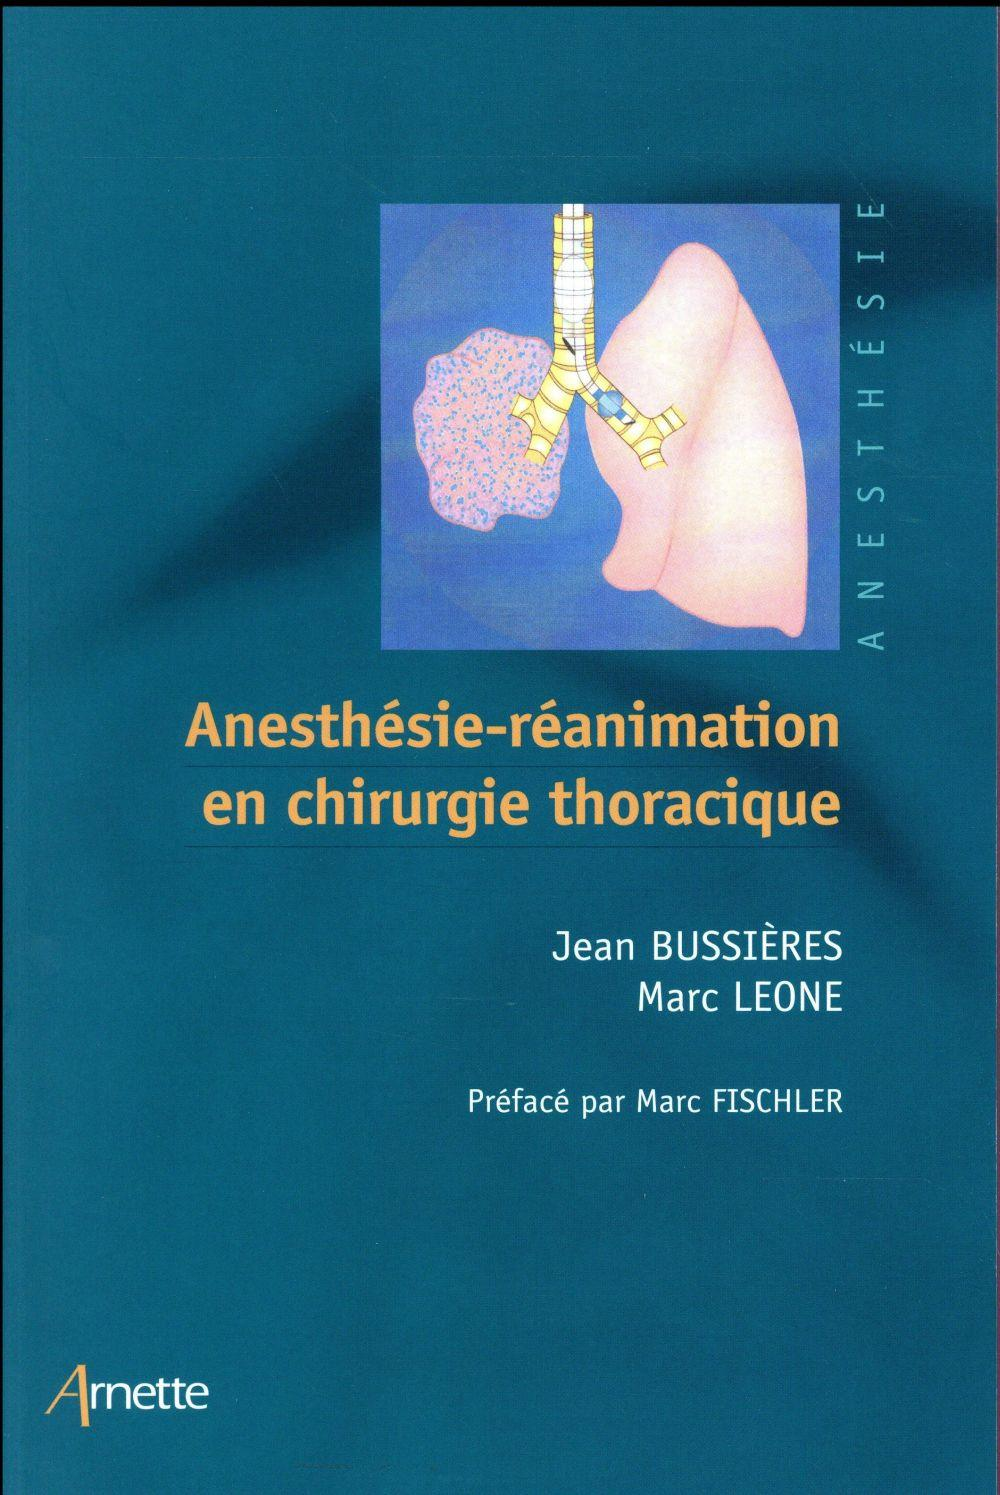 Anesthesie reanimation en chirurgie thoracique  - Bussieres/Leone